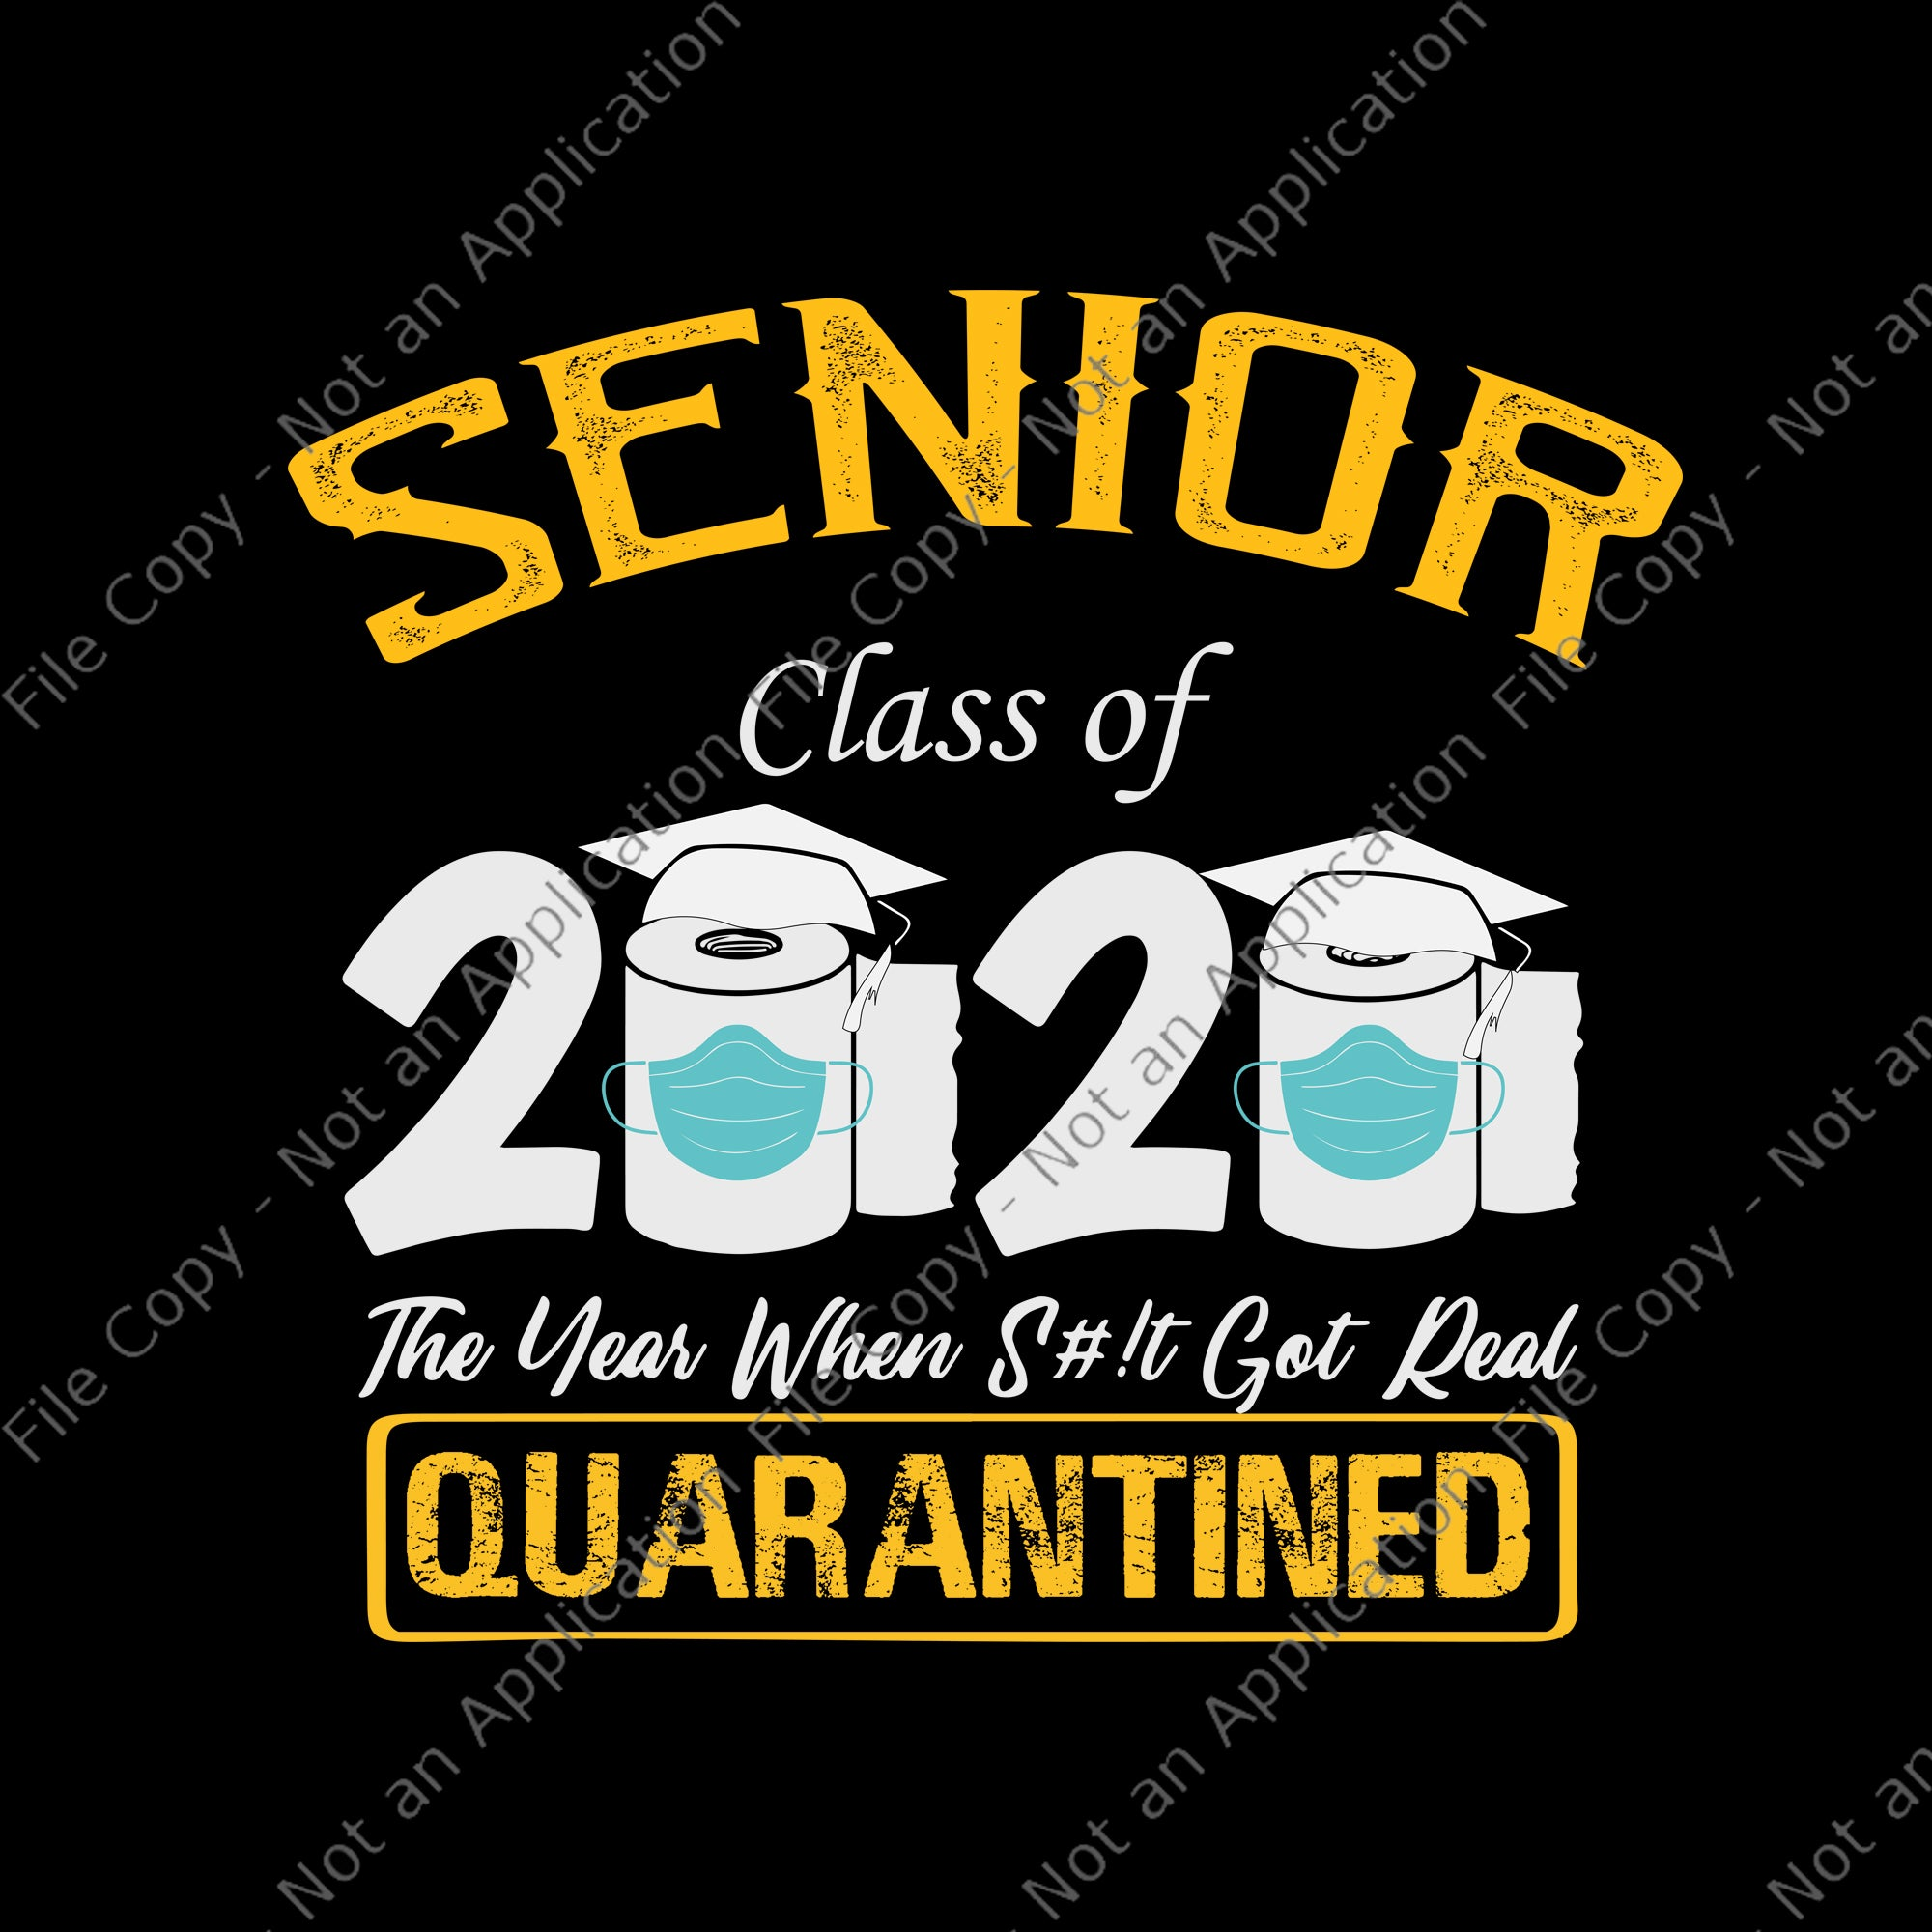 Senior class of 2020 the year when shit got real quarantined svg, senior class of 2020 shit just got real svg, senior class of 2020 shit just got real, senior 2020 png, eps, dxf svg file